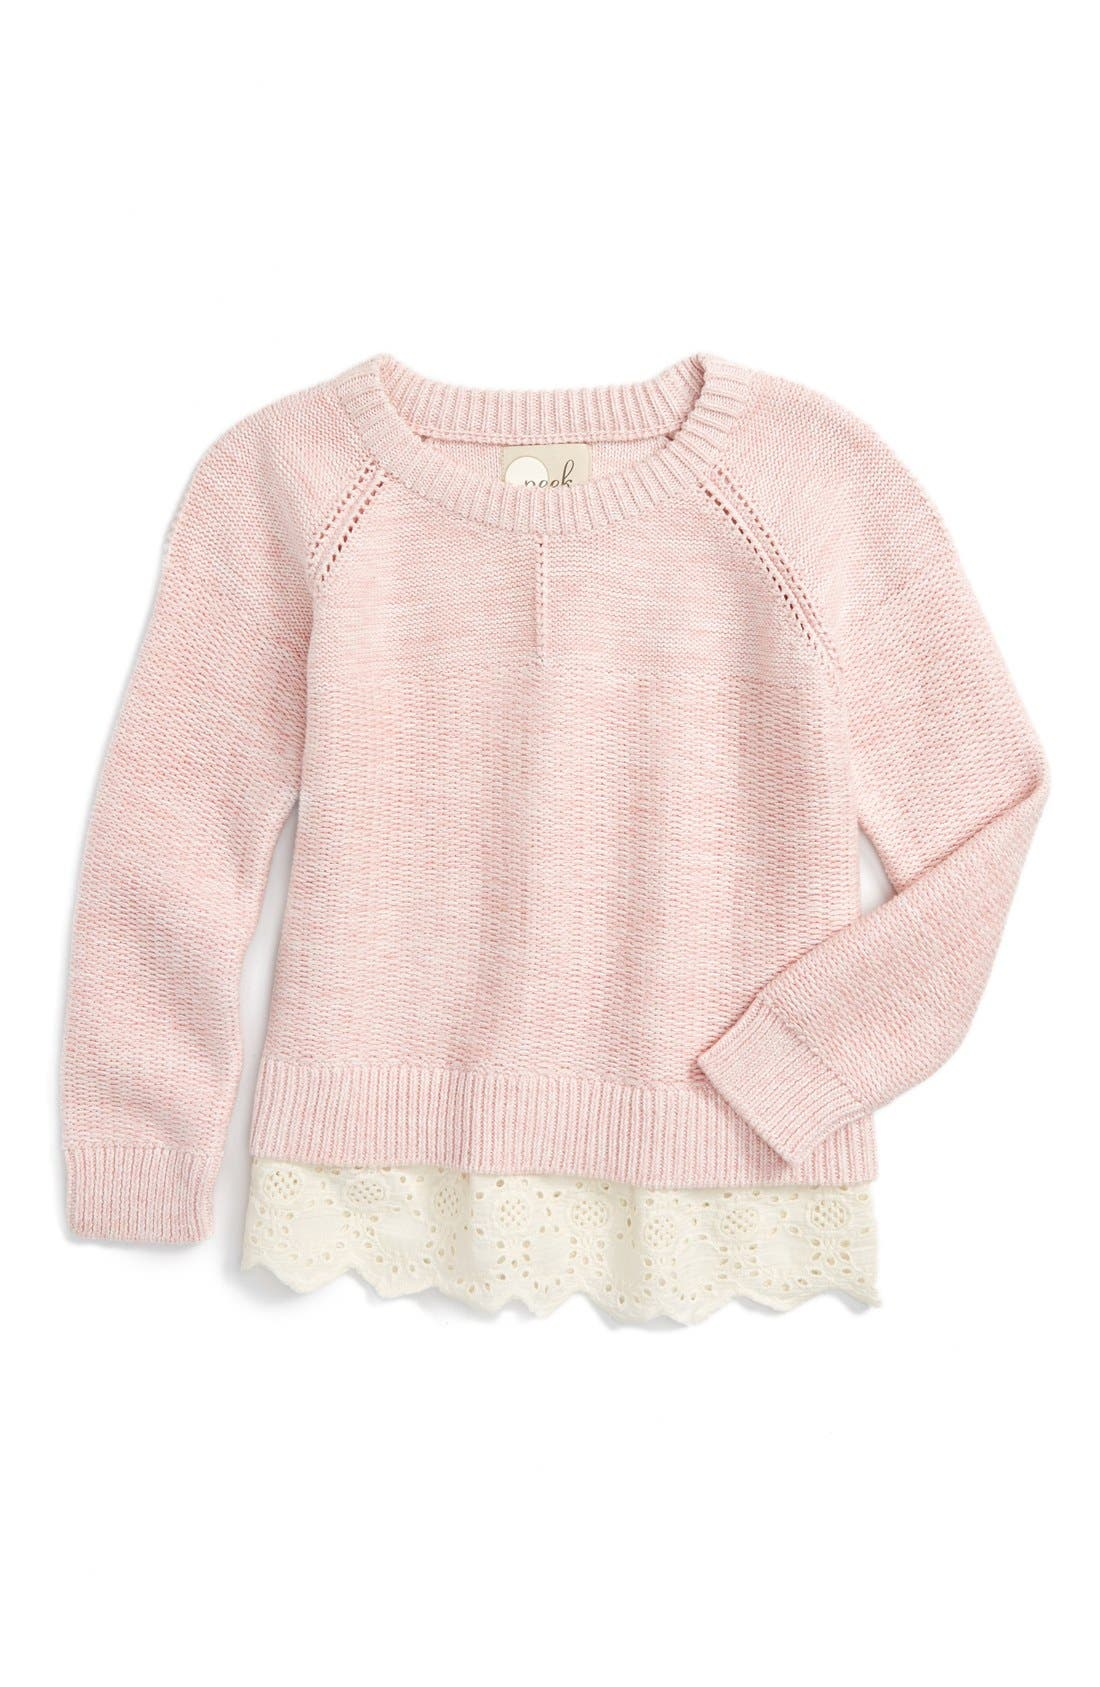 Alternate Image 1 Selected - Peek Lulu Sweater (Toddler Girls, Little Girls & Big Girls)